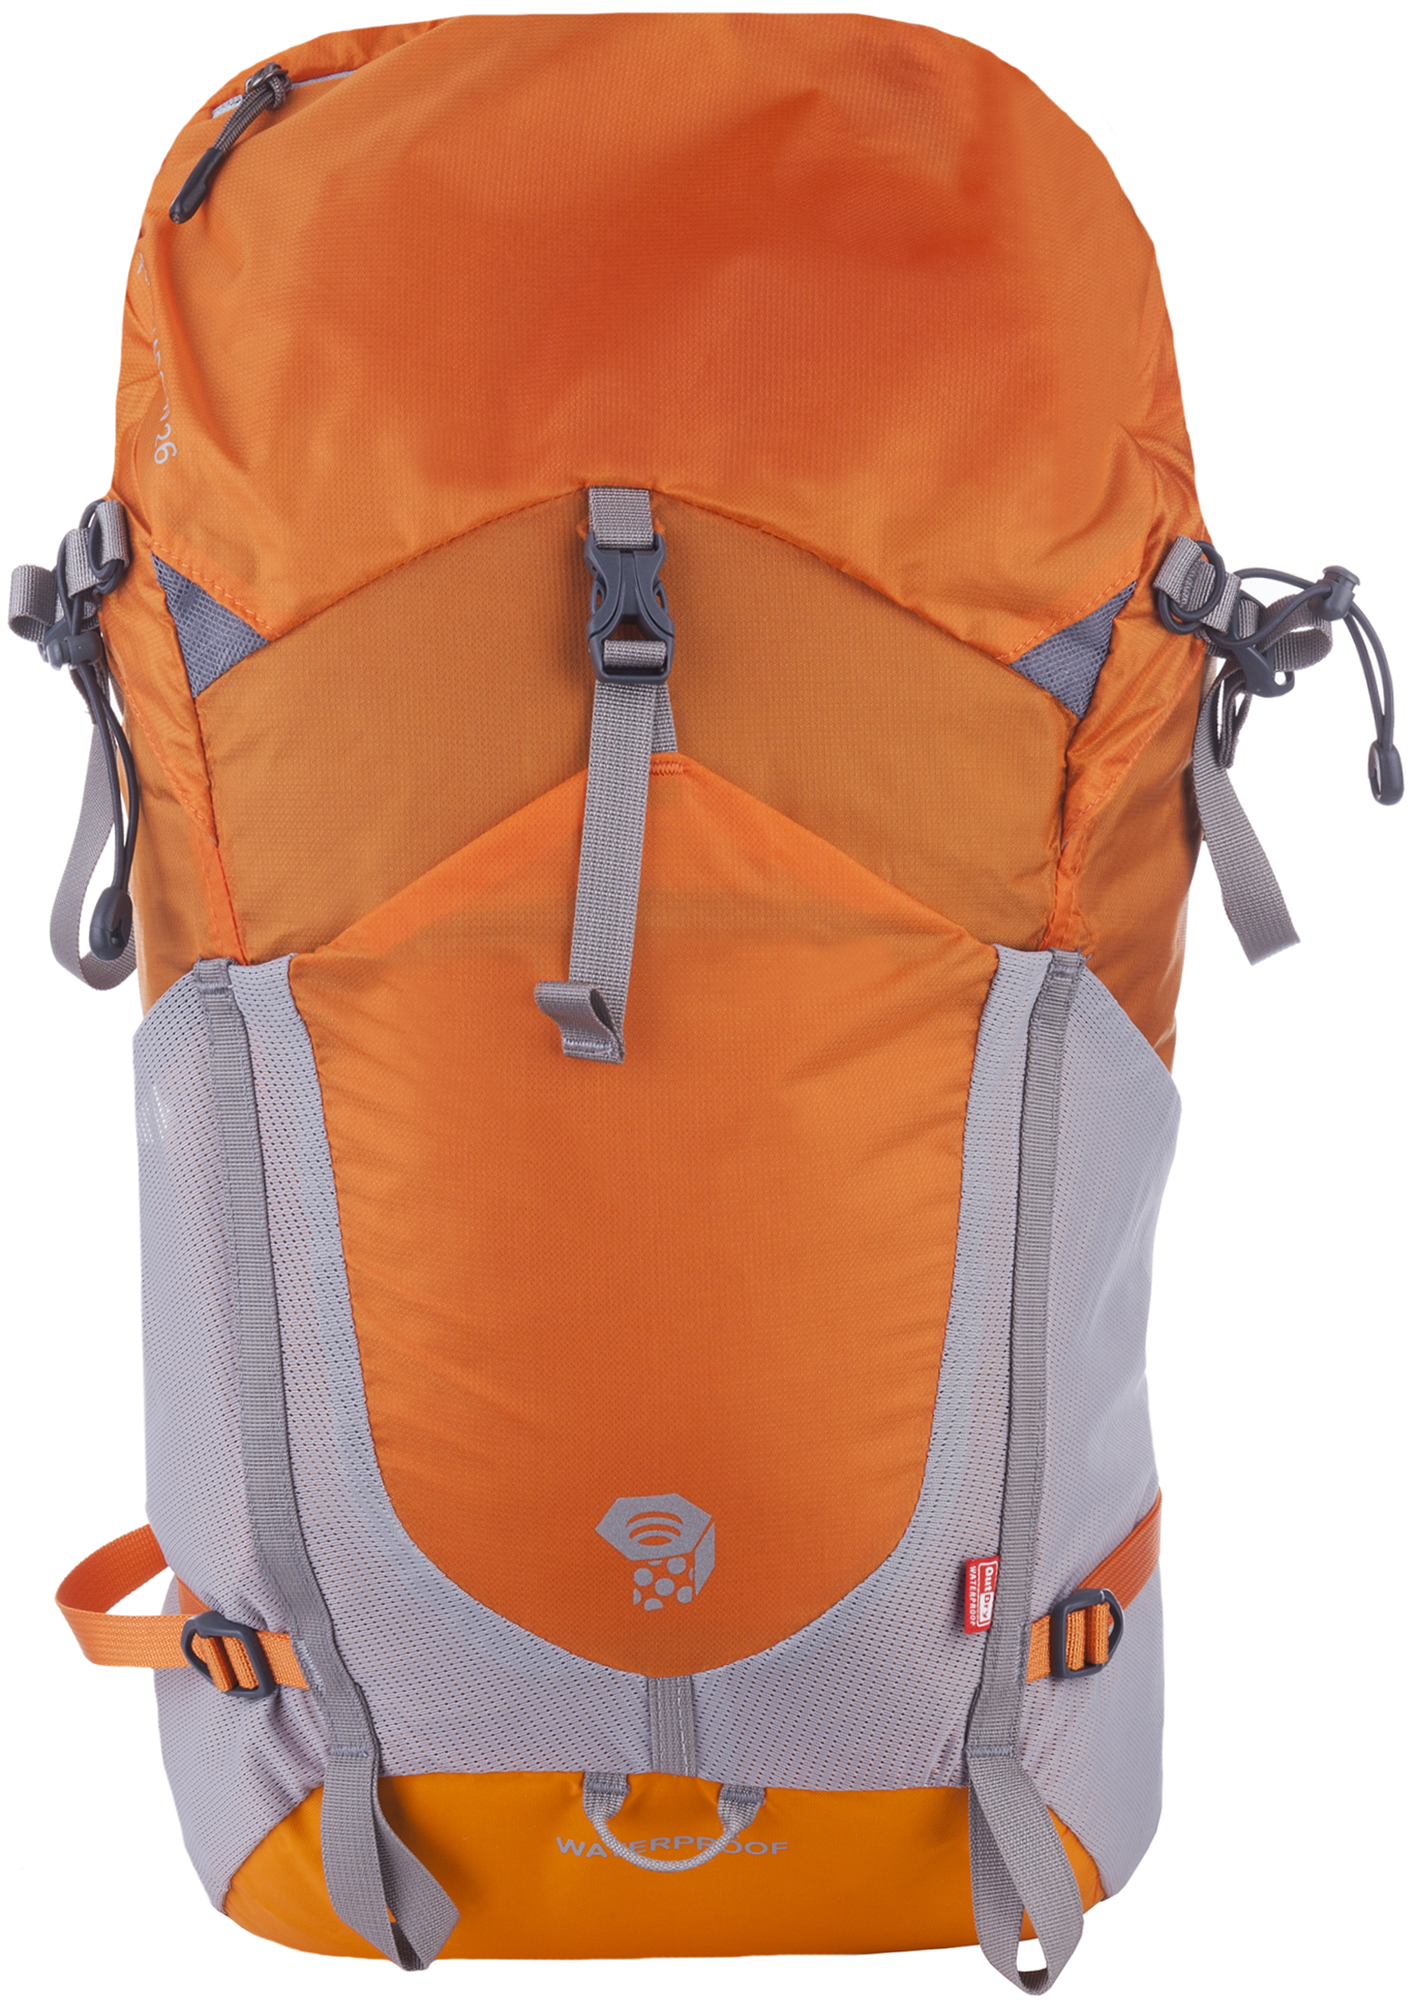 Mountain Hardwear Mountain Hardwear Rainshadow 26 OutDry, размер Без размера